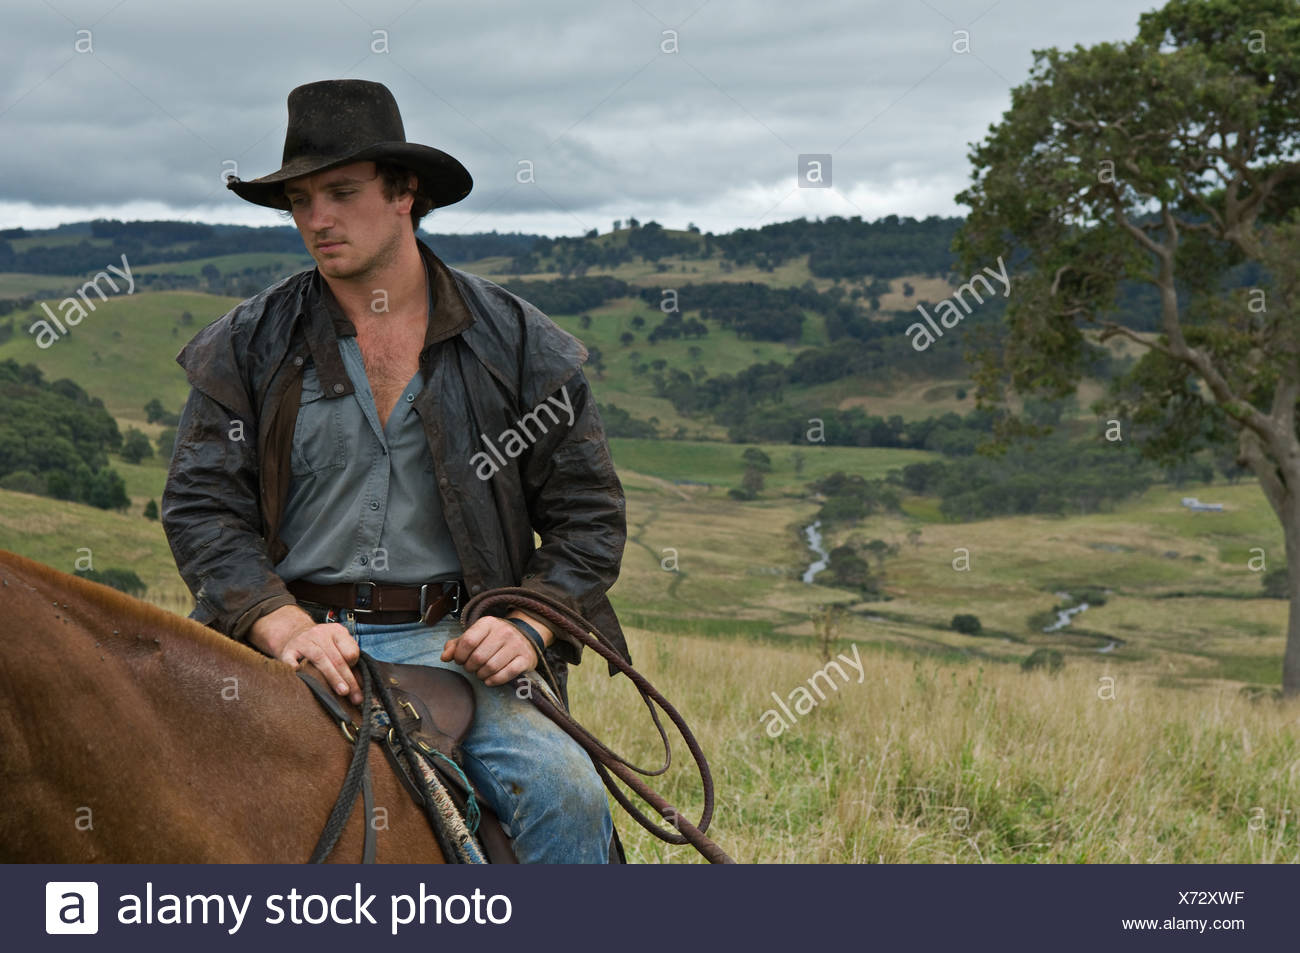 Man on horse in countrside - Stock Image